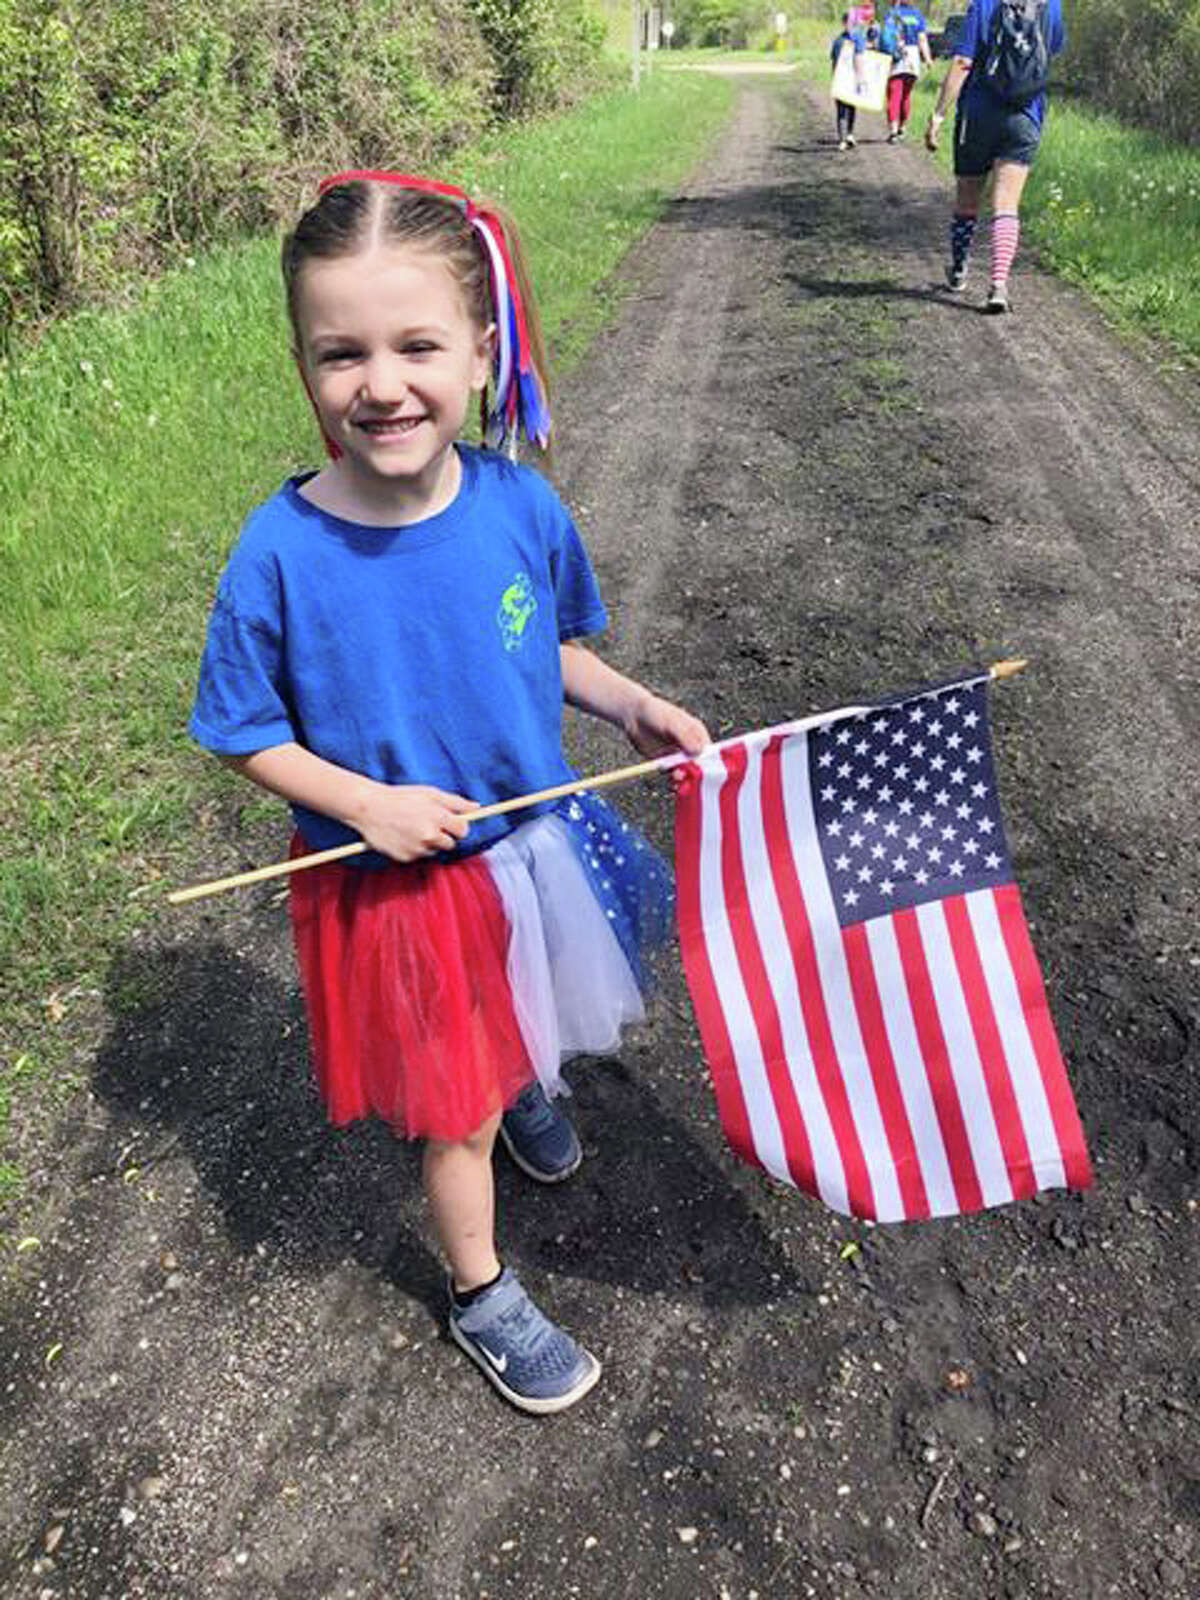 The Vining Volunteers from Stanwood wanted to raise money for disabled veterans this Memorial Day Weekend. On Sunday, volunteers did a walk. Some completed 3 miles, some 10 miles, and 6 of of them finished 20 miles. Together, they raised $1,145 for Disabled American Veterans.